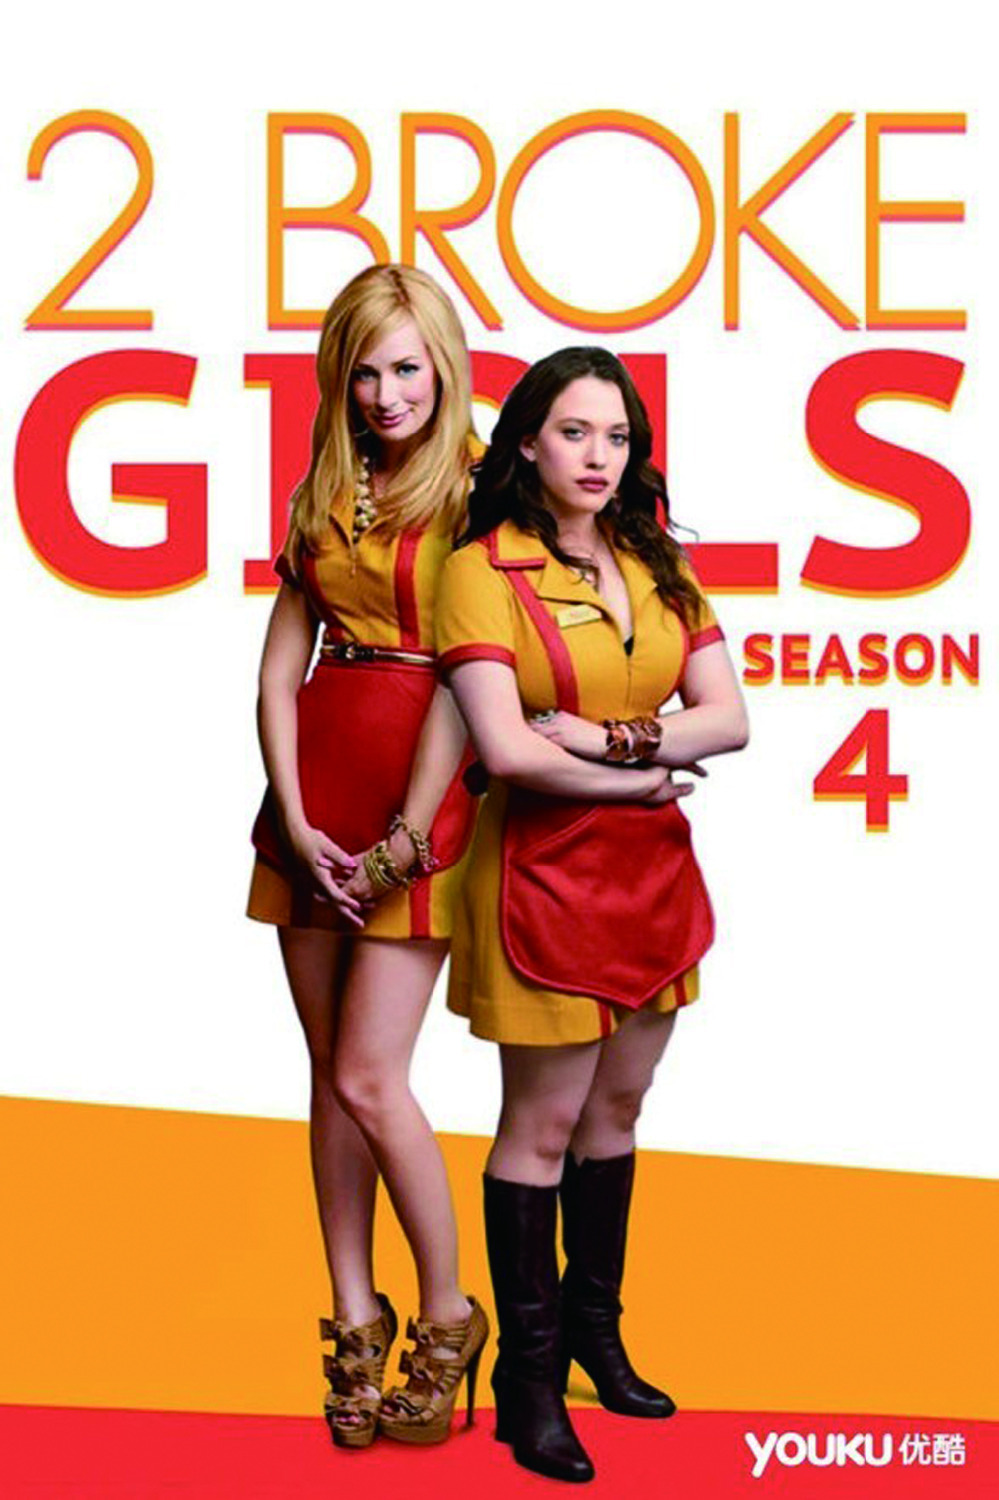 2 Broke Girls saison 4 en français